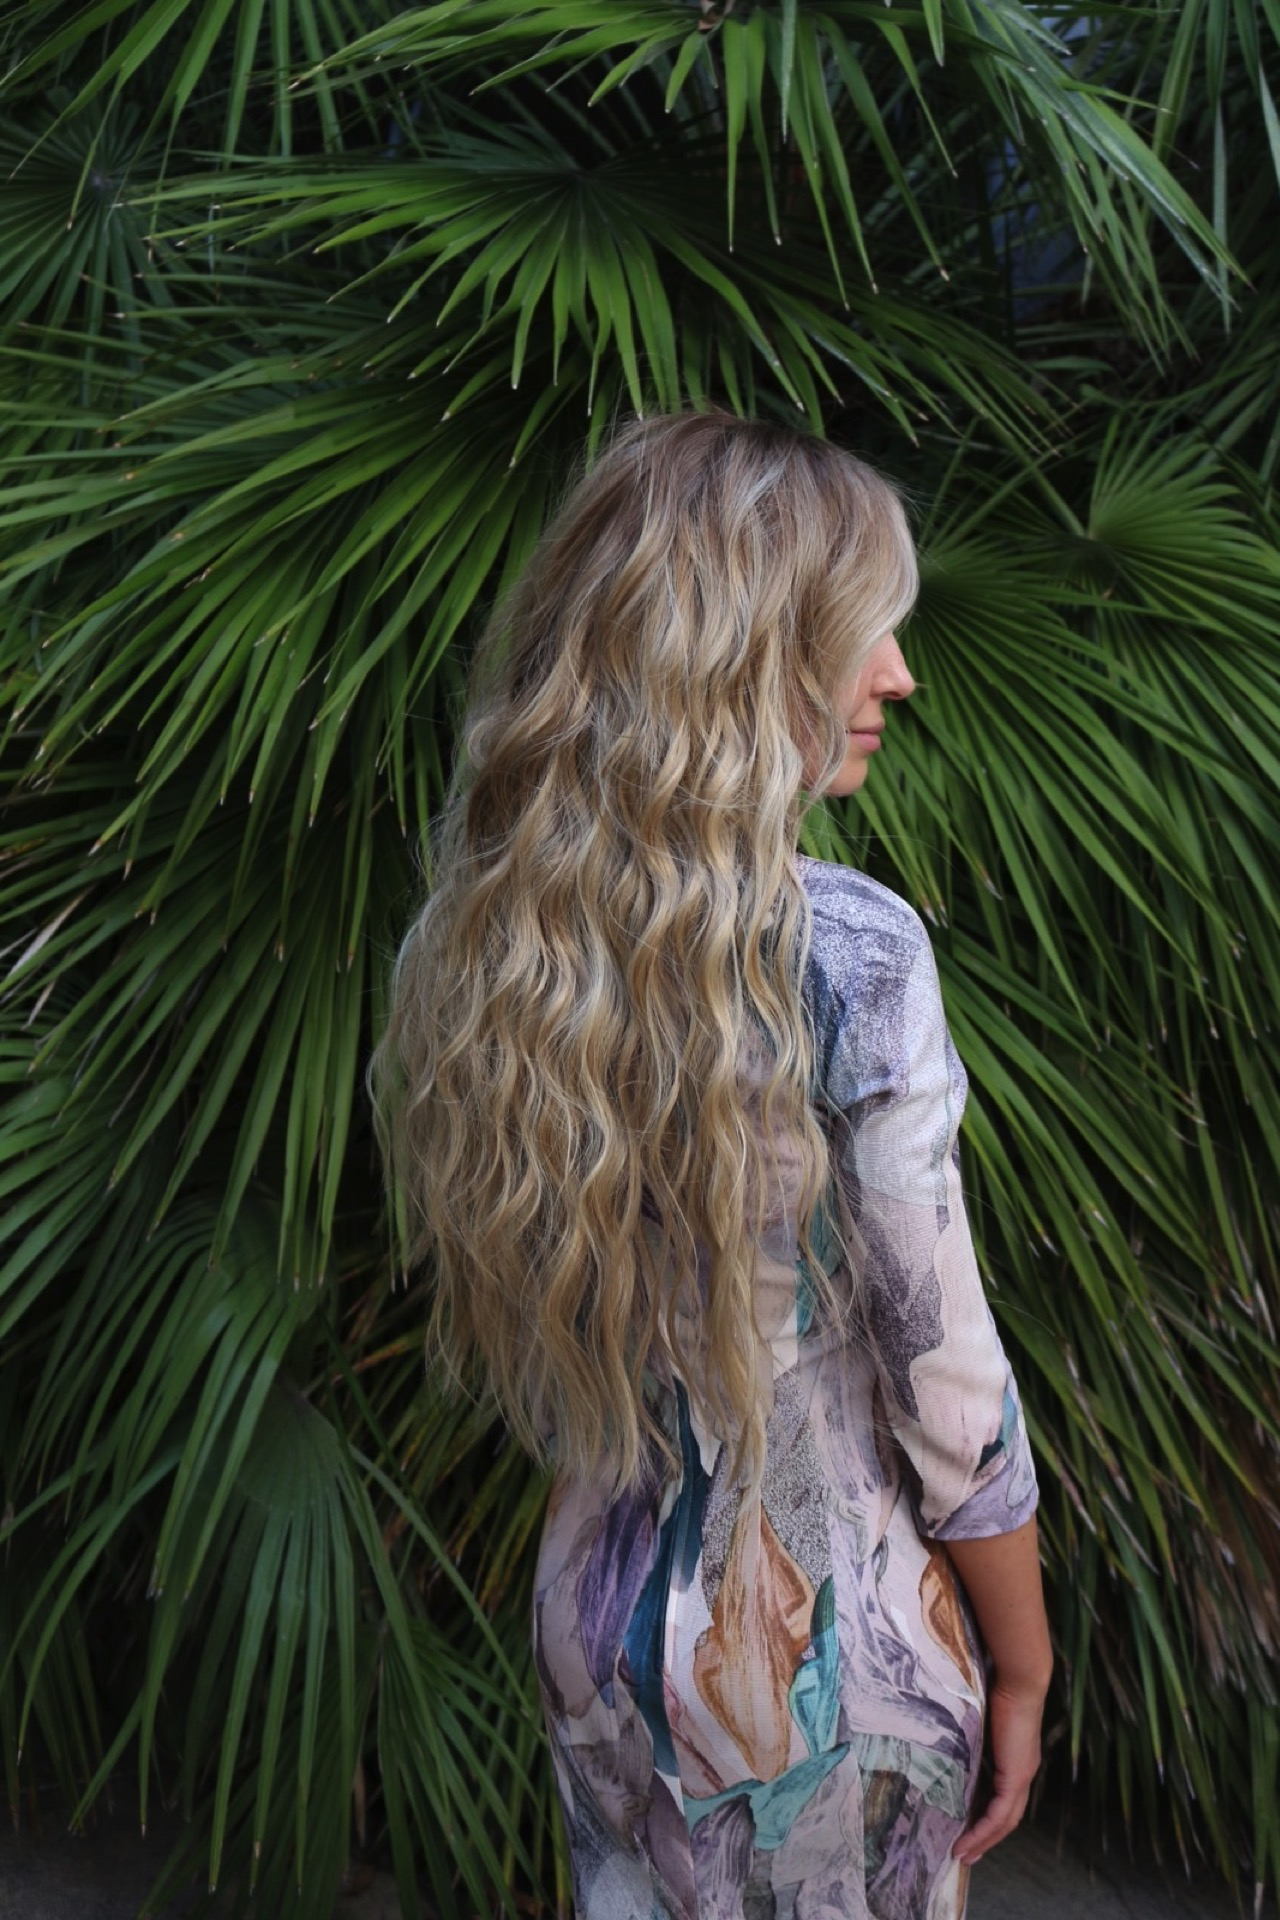 NBR - Natural Beaded Rows by DKW Styling